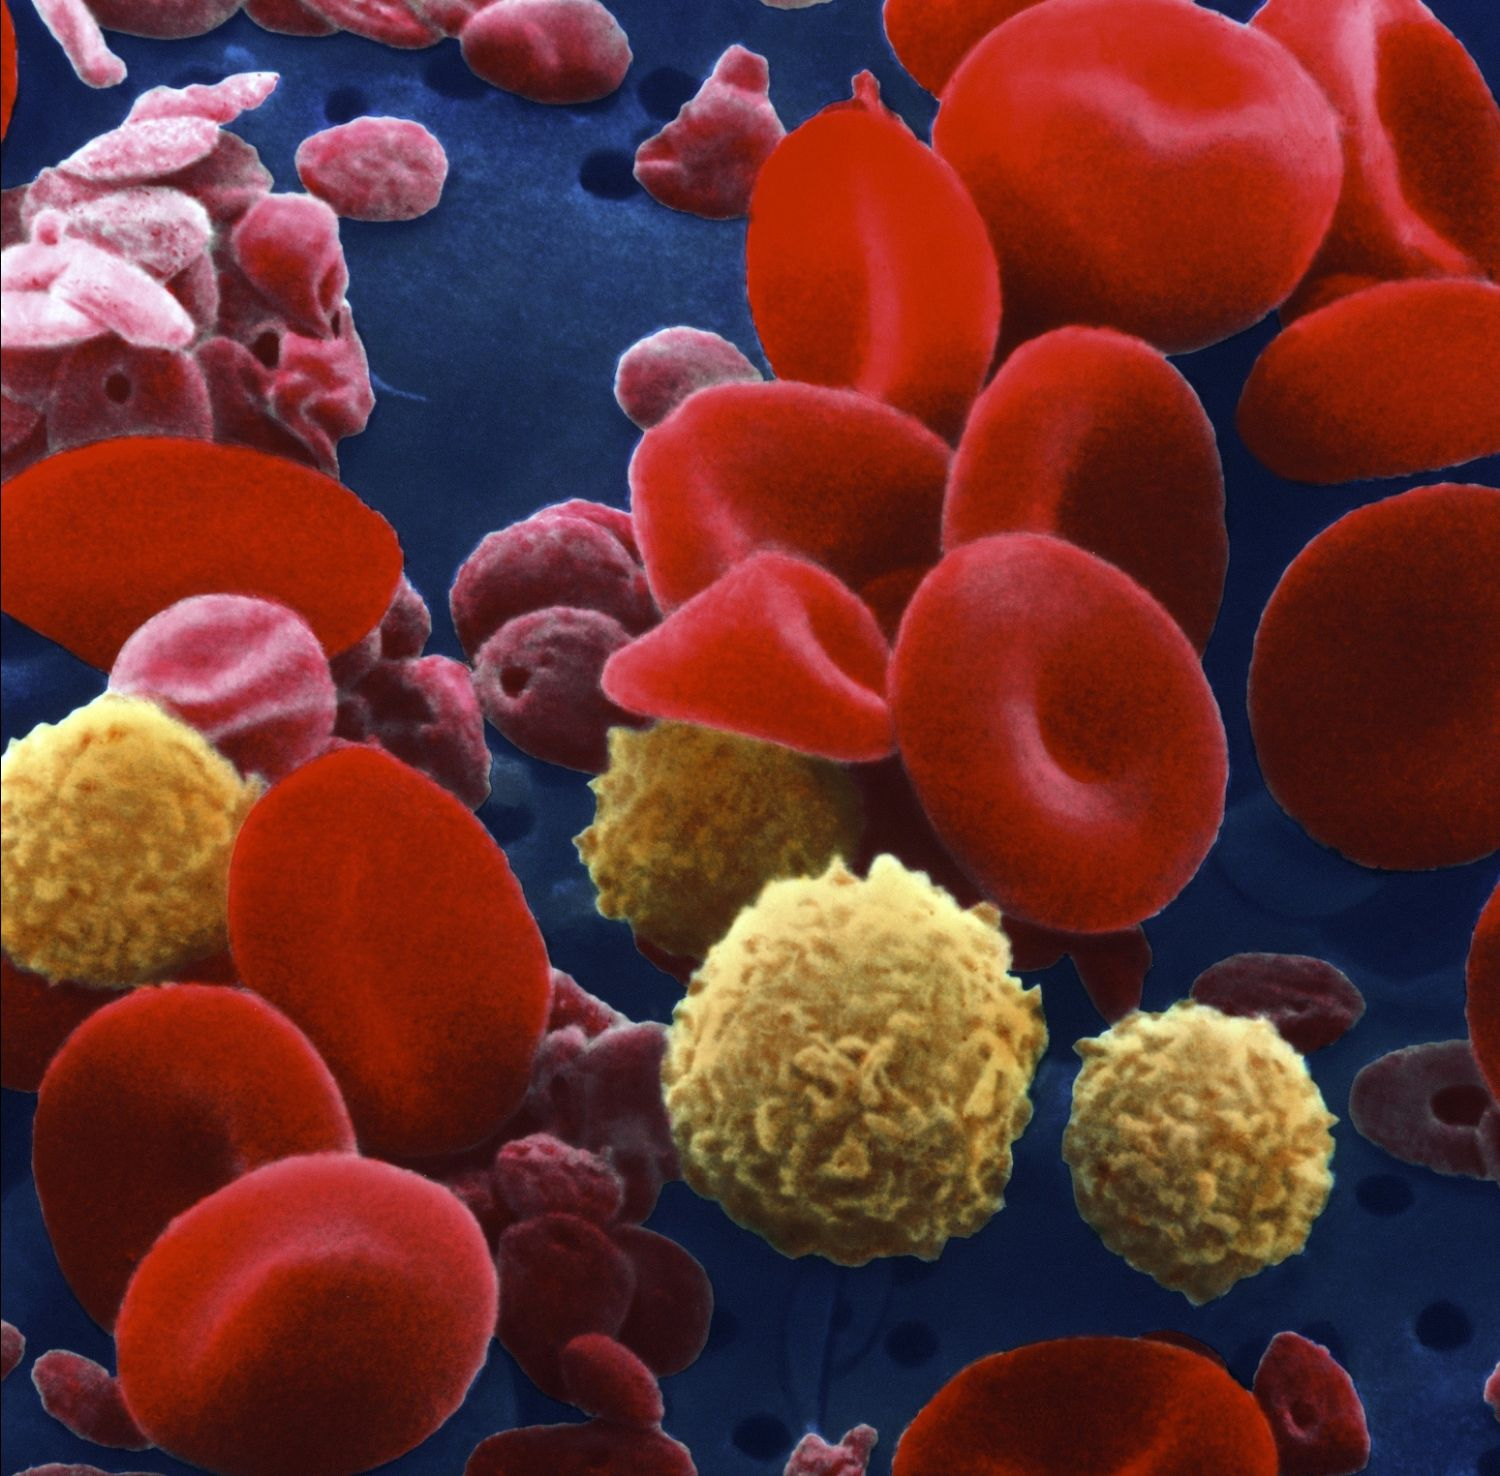 Blood Components And Blood Cell Production